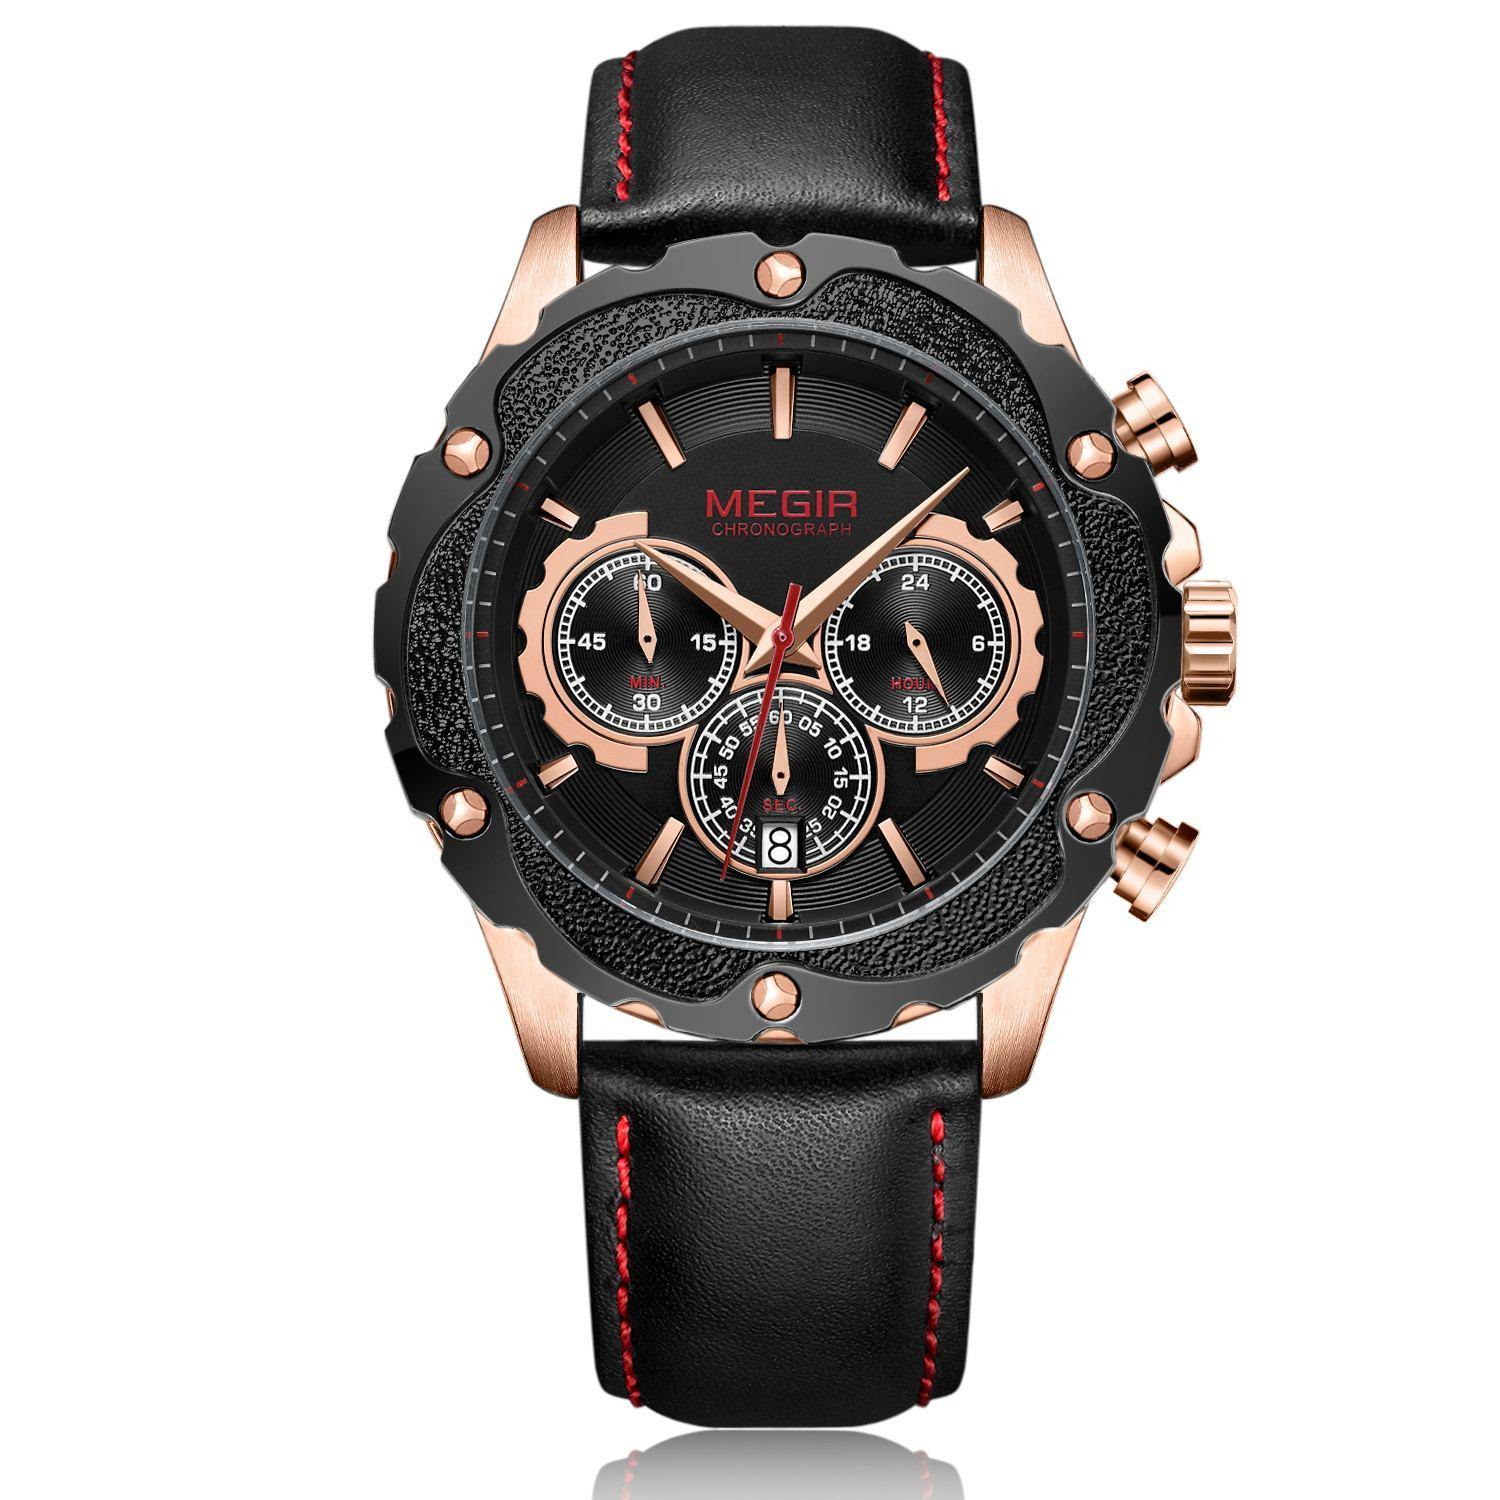 MEGIR Chronograph Sports Watch for Men 2070 - MEGIR